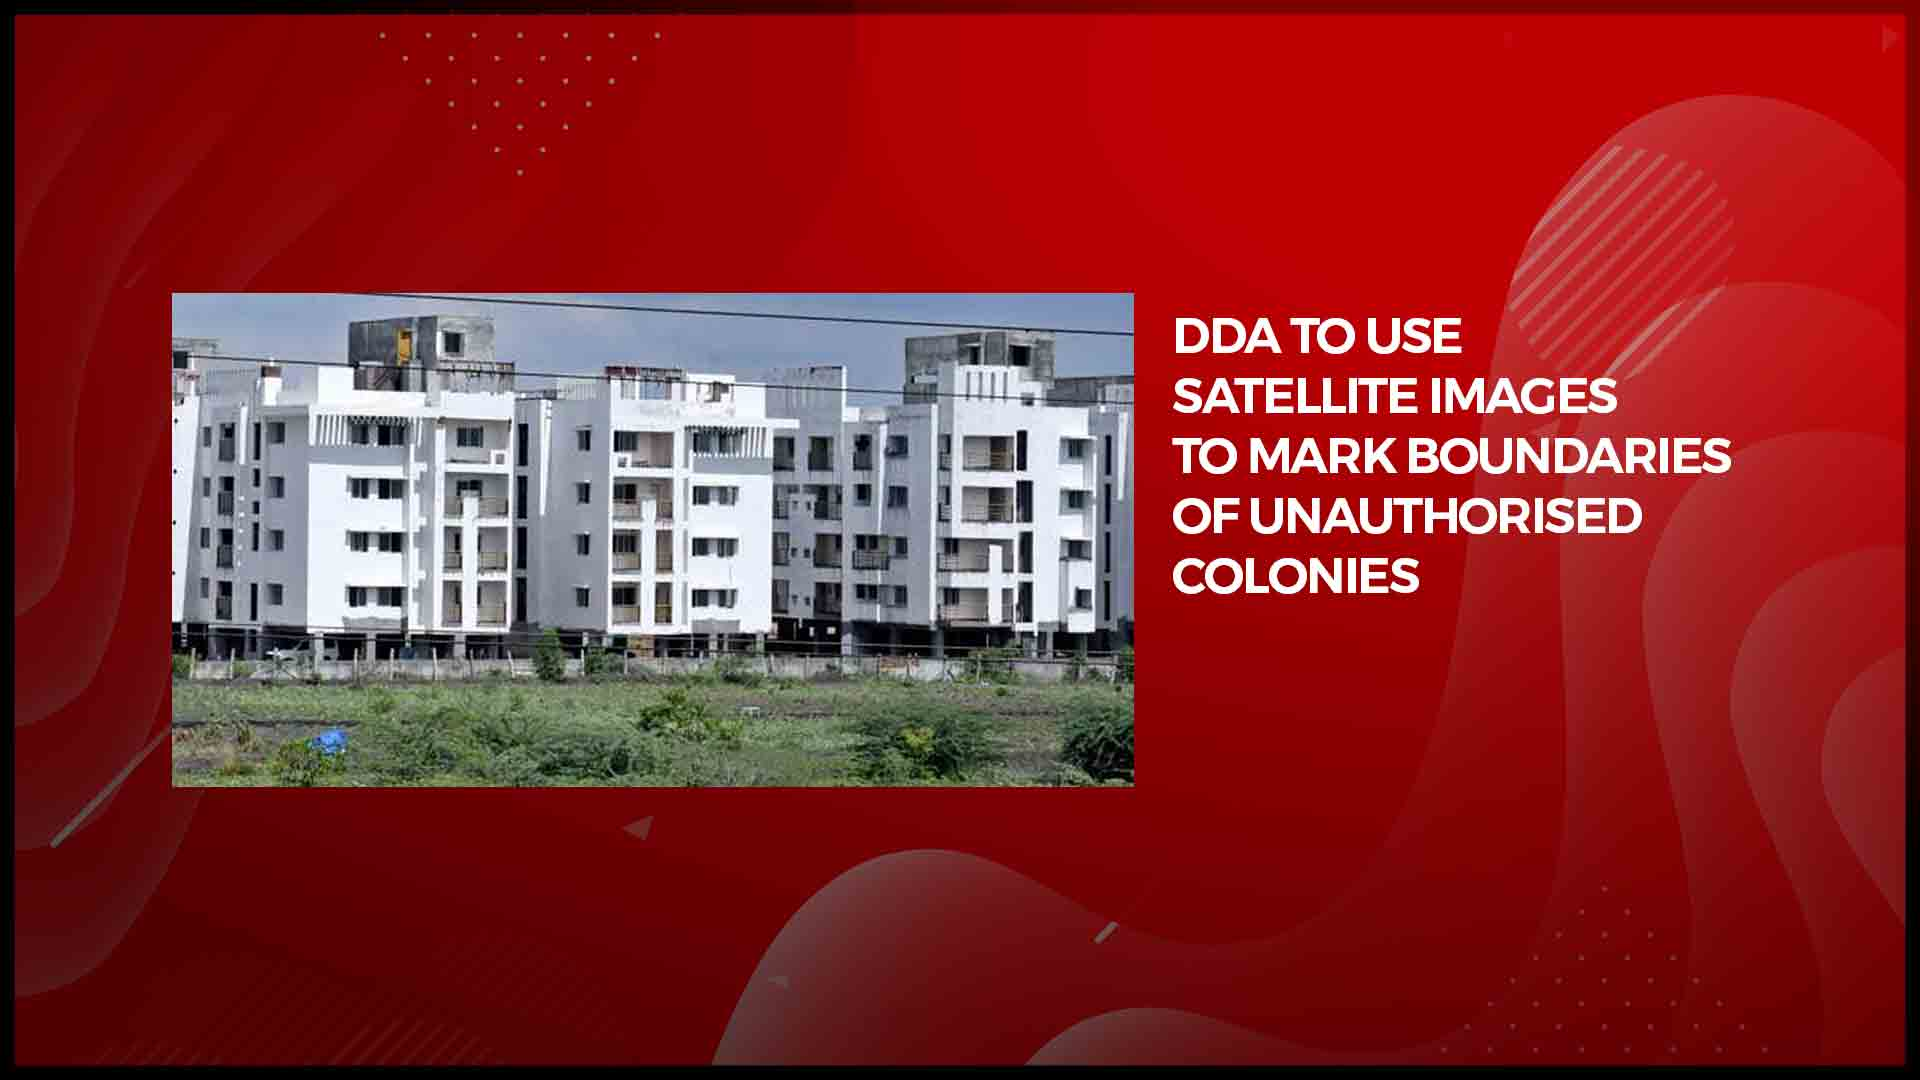 DDA to use satellite images to mark boundaries of unauthorised colonies